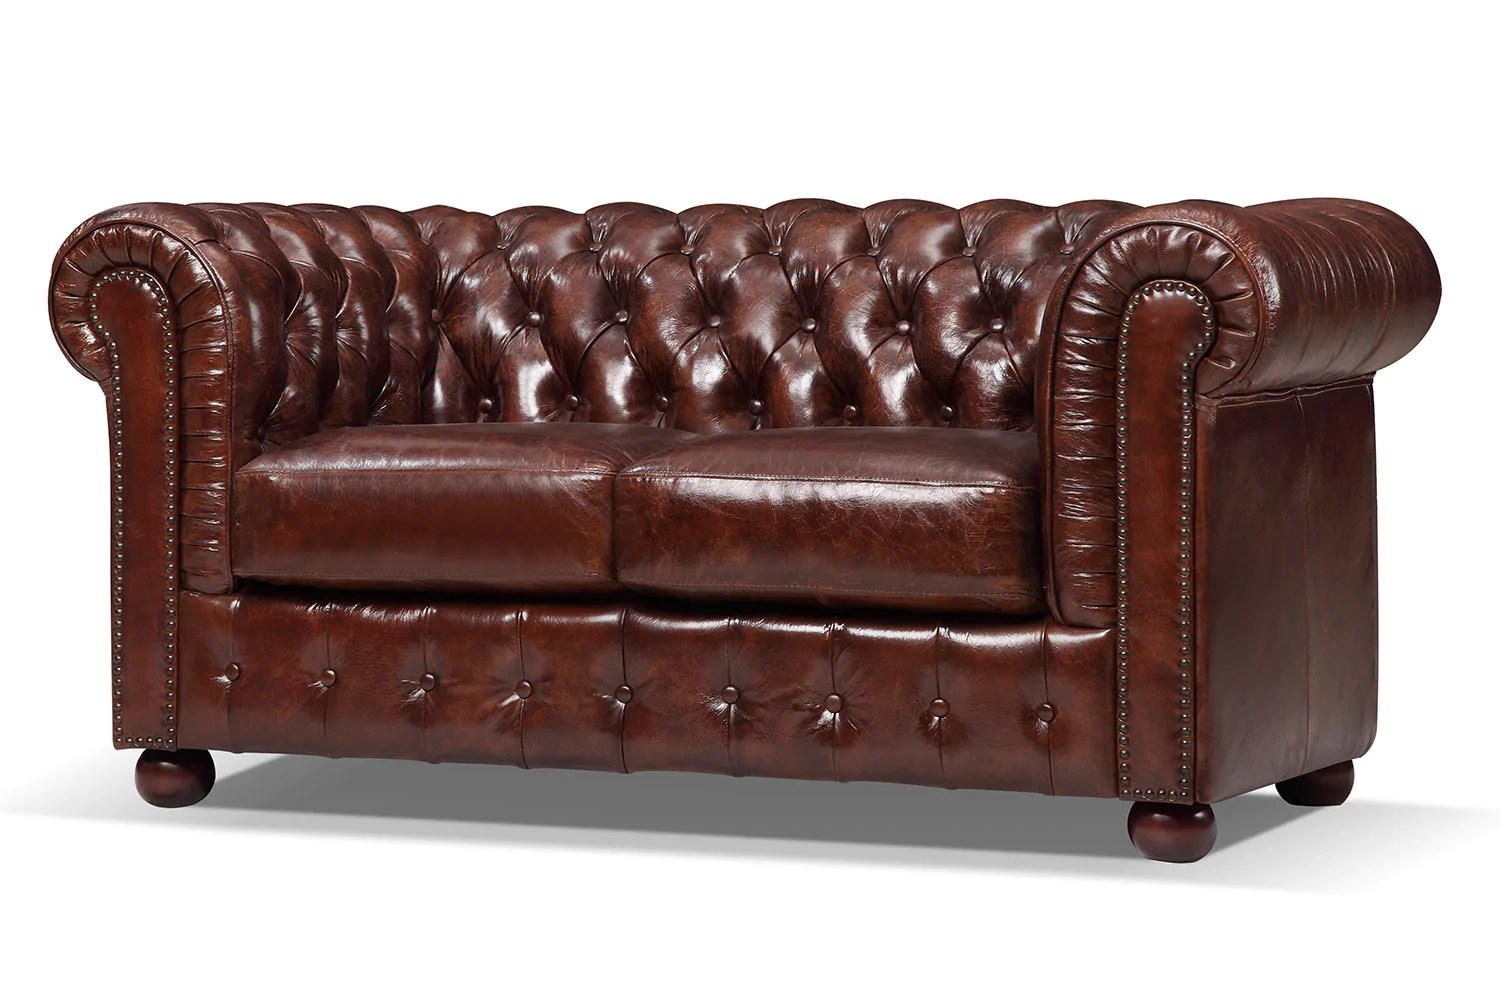 Canapé Chesterfield 2 Places Canapé Chesterfield Original 2 Places Rose Moore